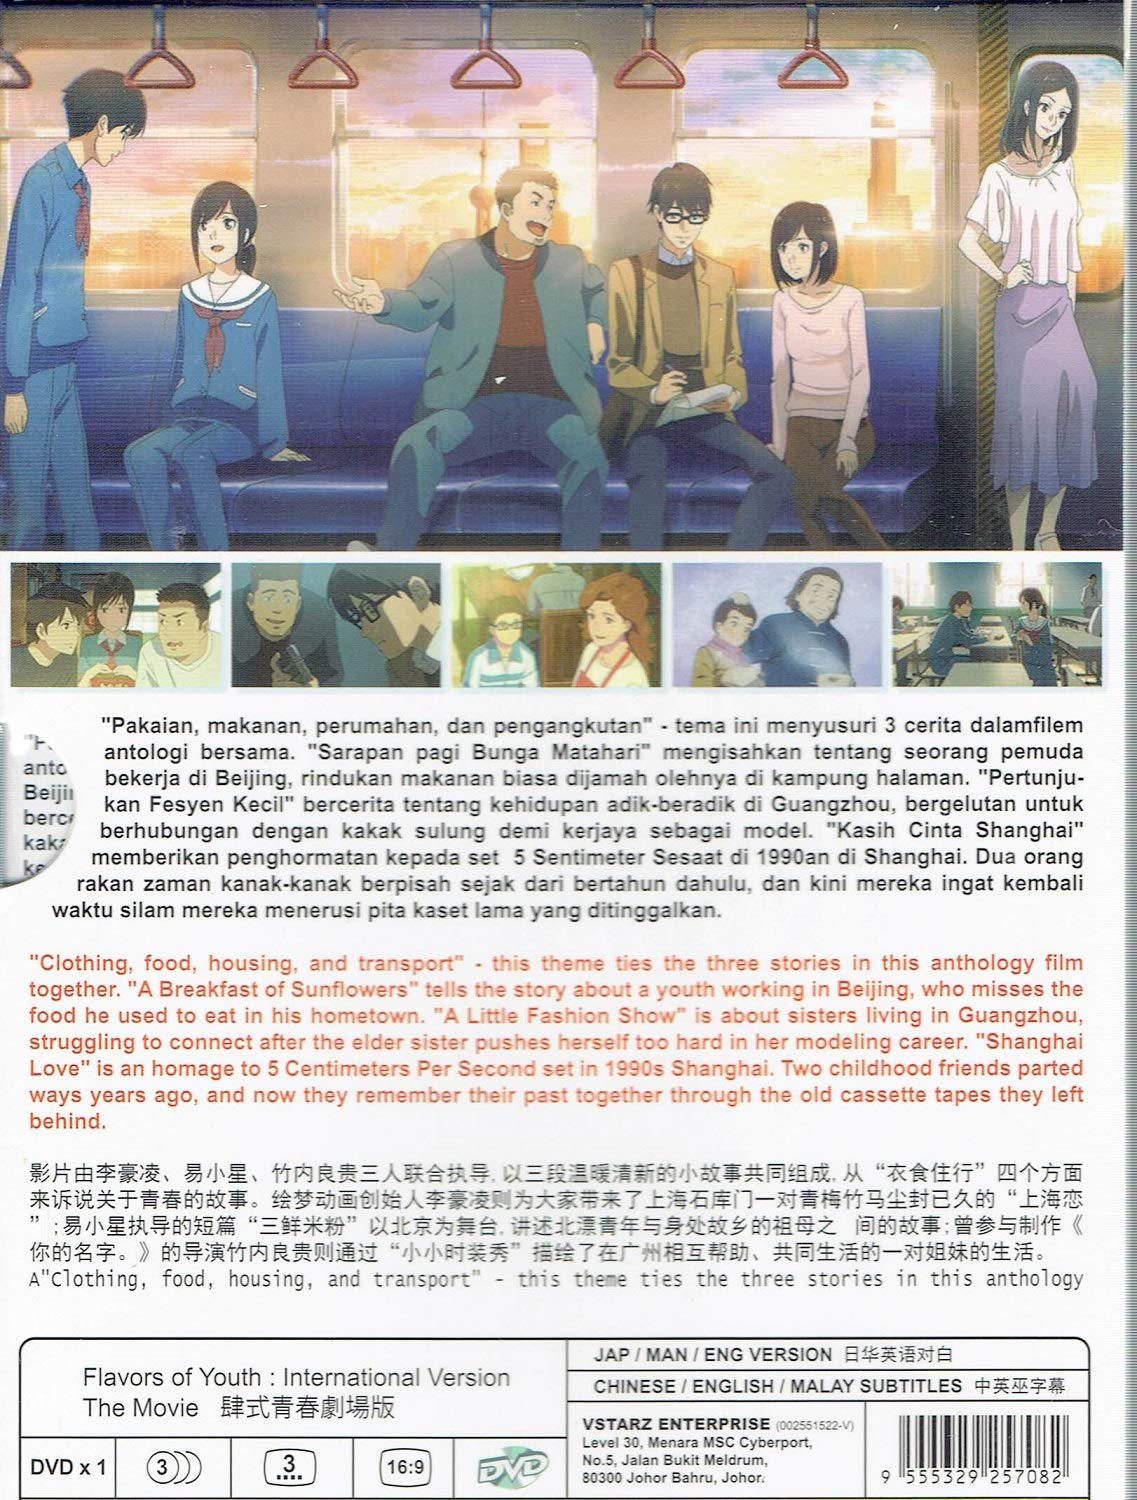 Amazon Com Flavors Of Youth The International Version The Movie Complete Anime Movie Dvd Box Set Haoling Li Movies Tv